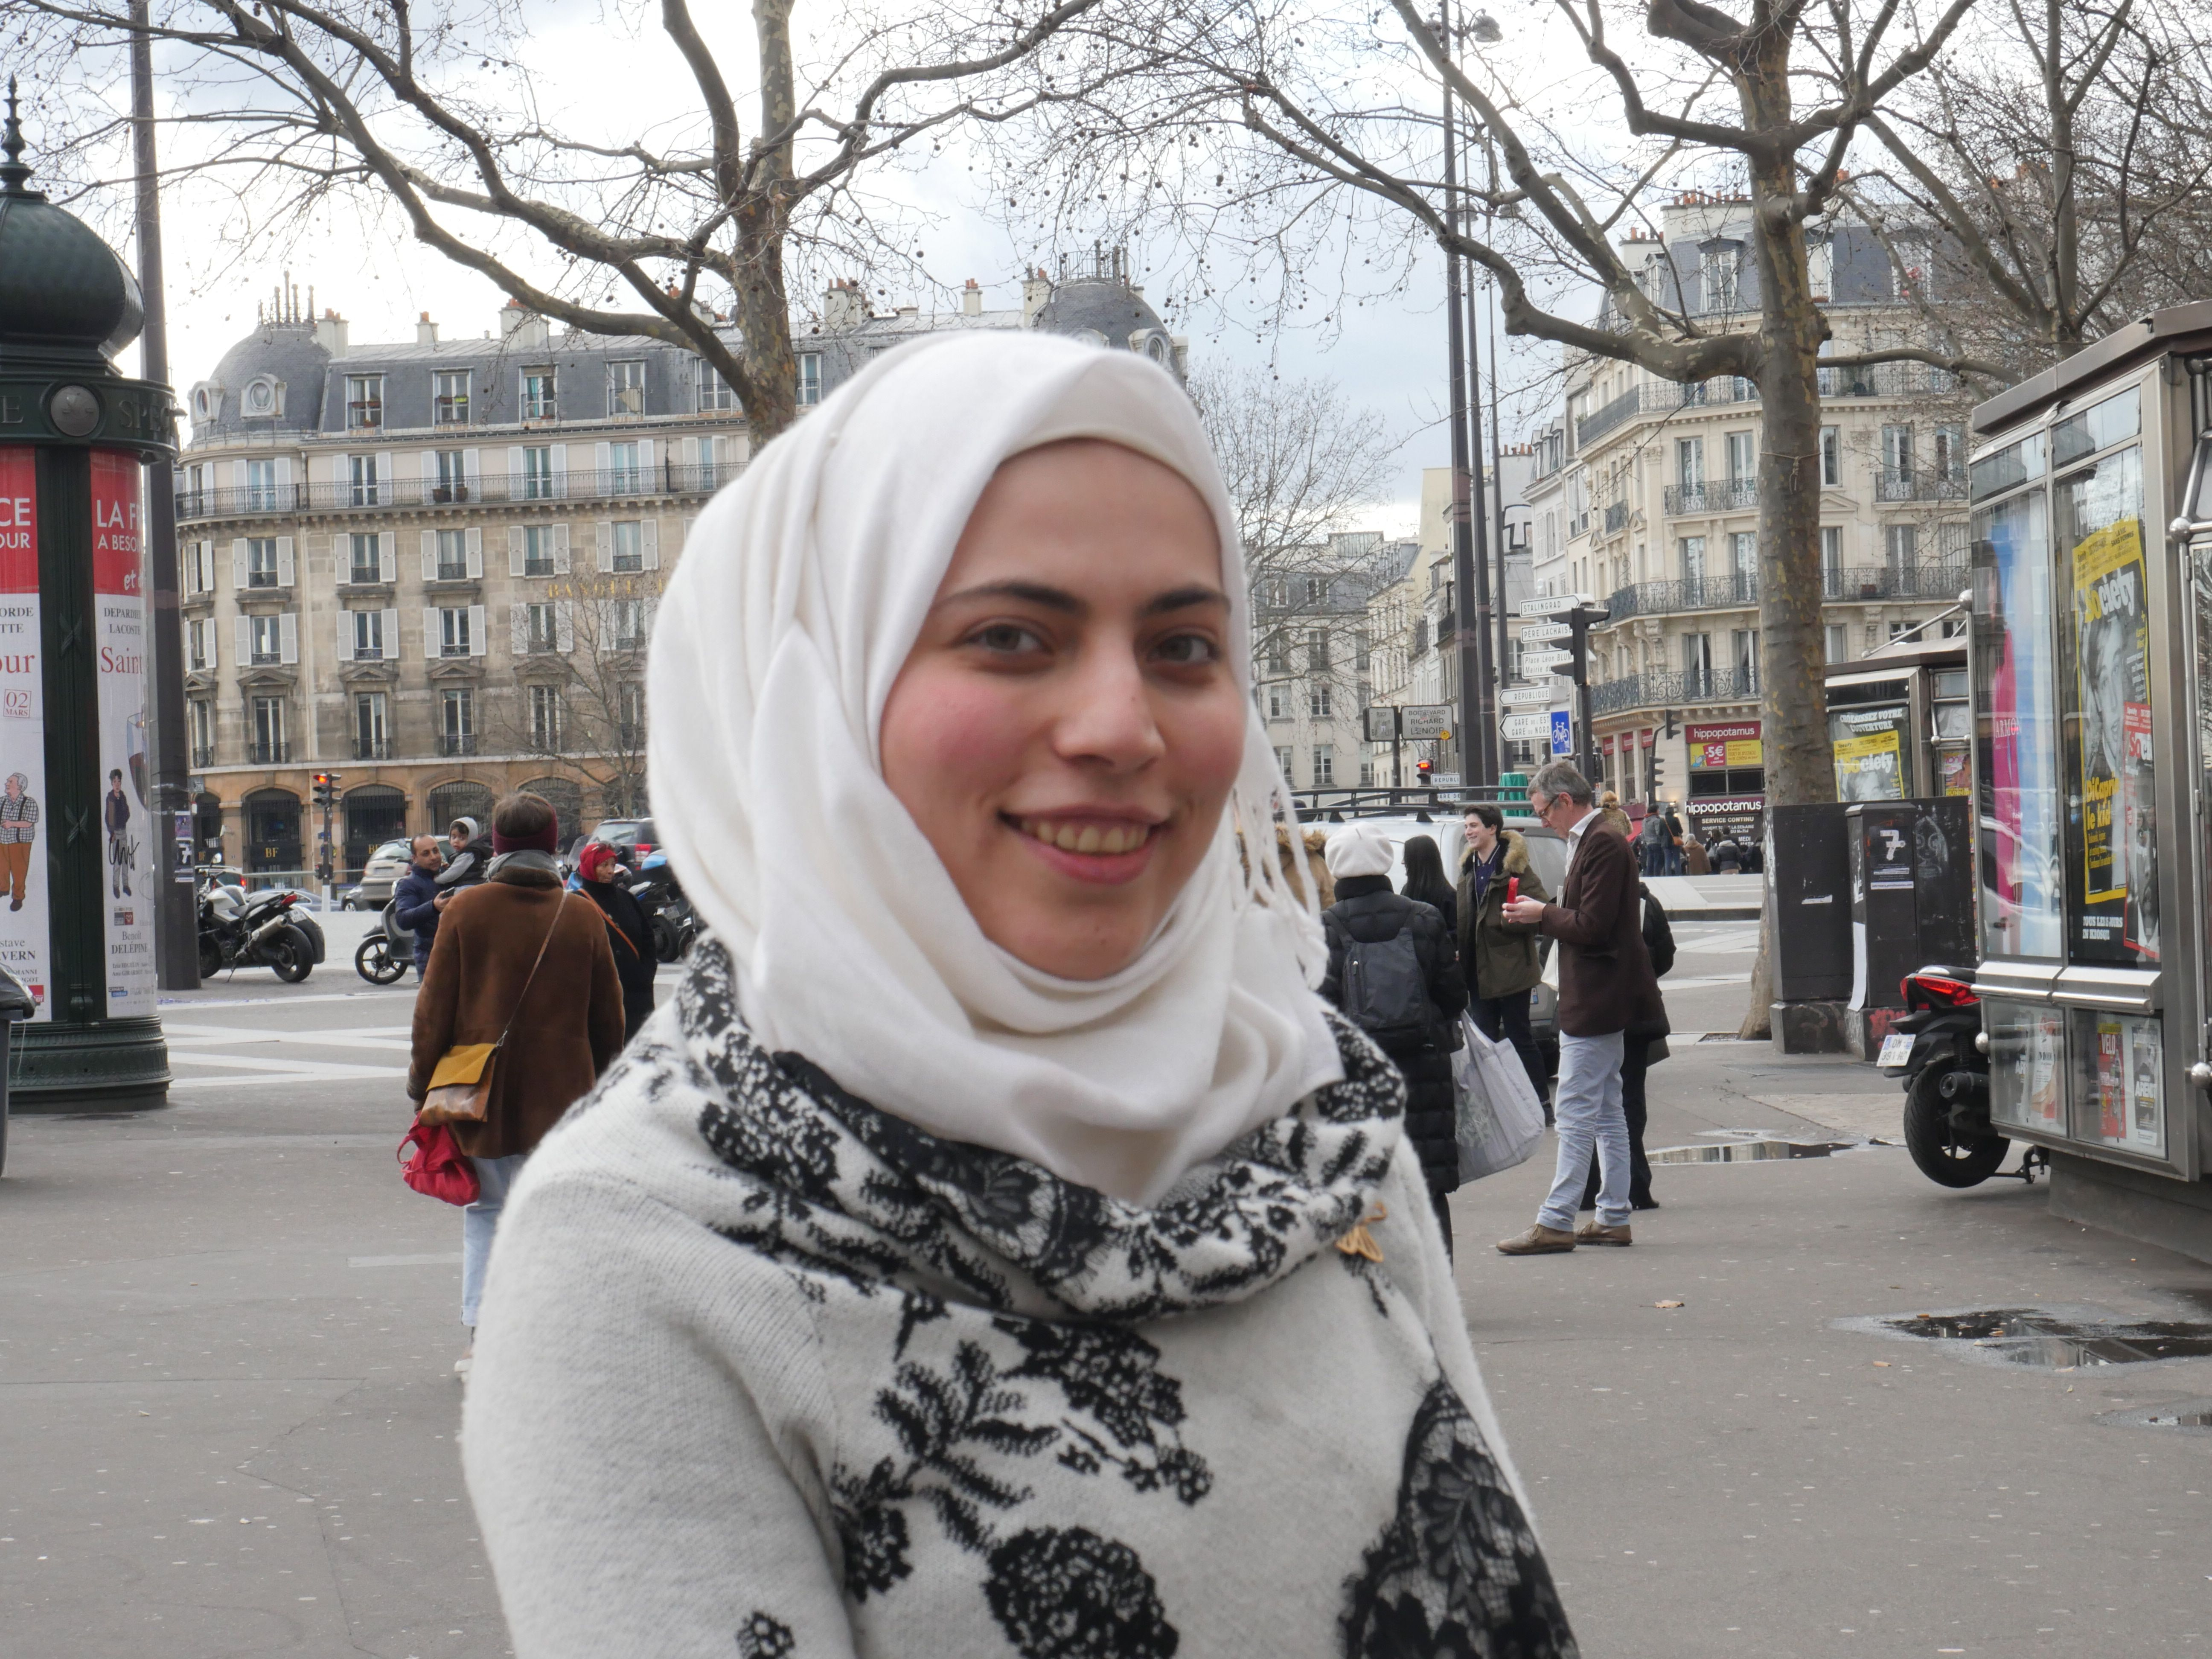 Lujain, place de la Bastille à Paris au mois d'avril 2016 (Crédit photo : A.-L. S)